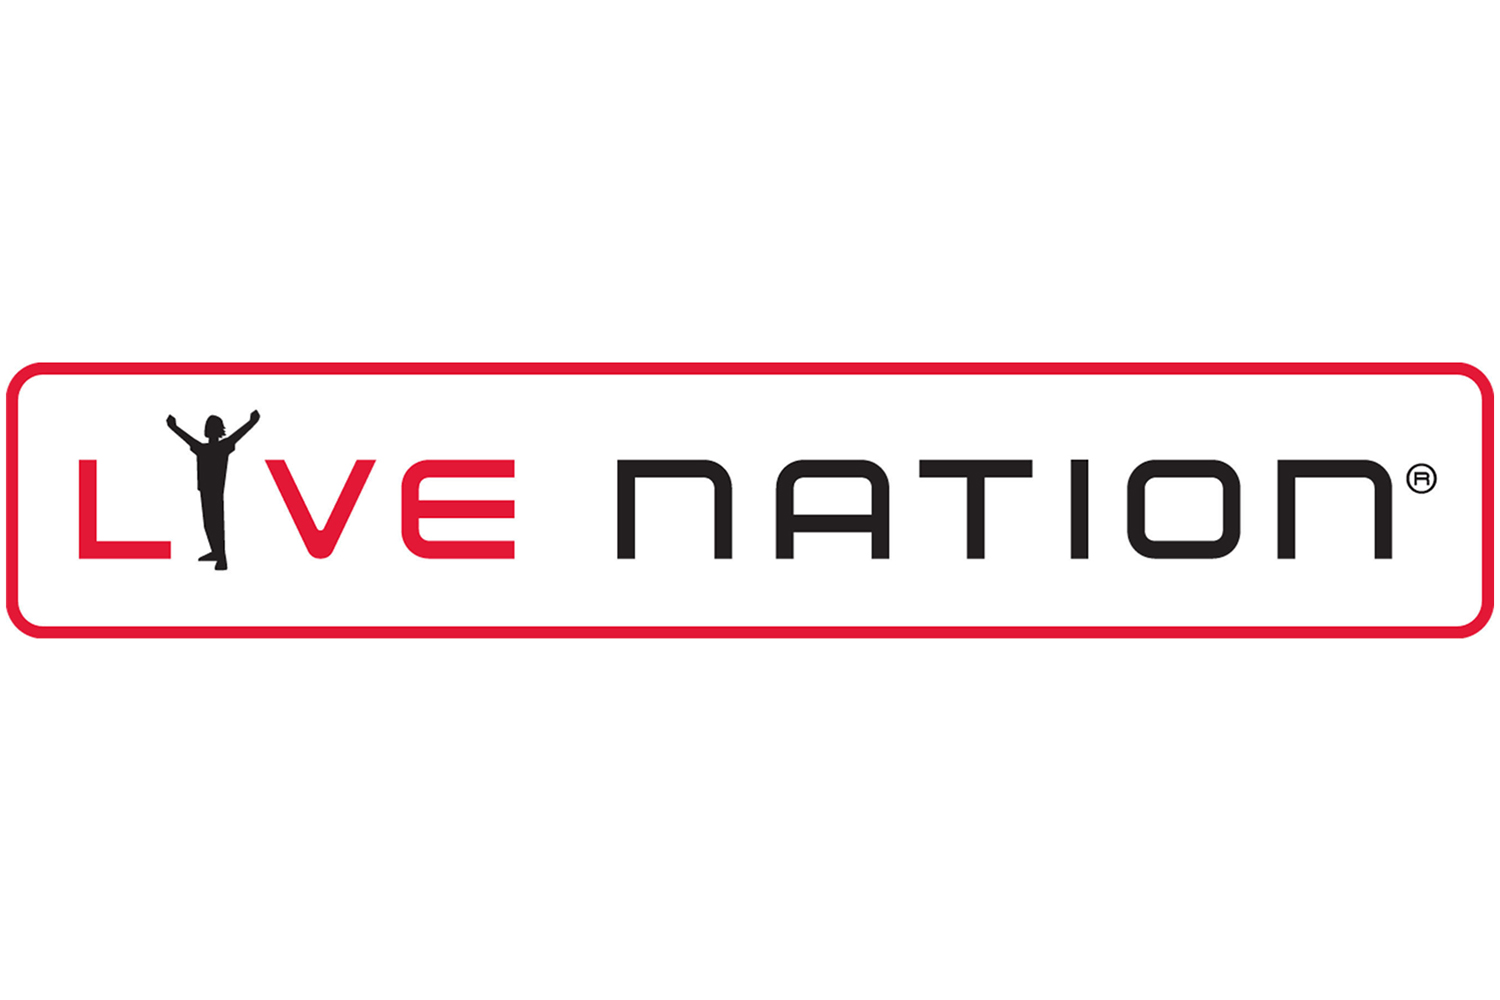 livenationlogo.jpg